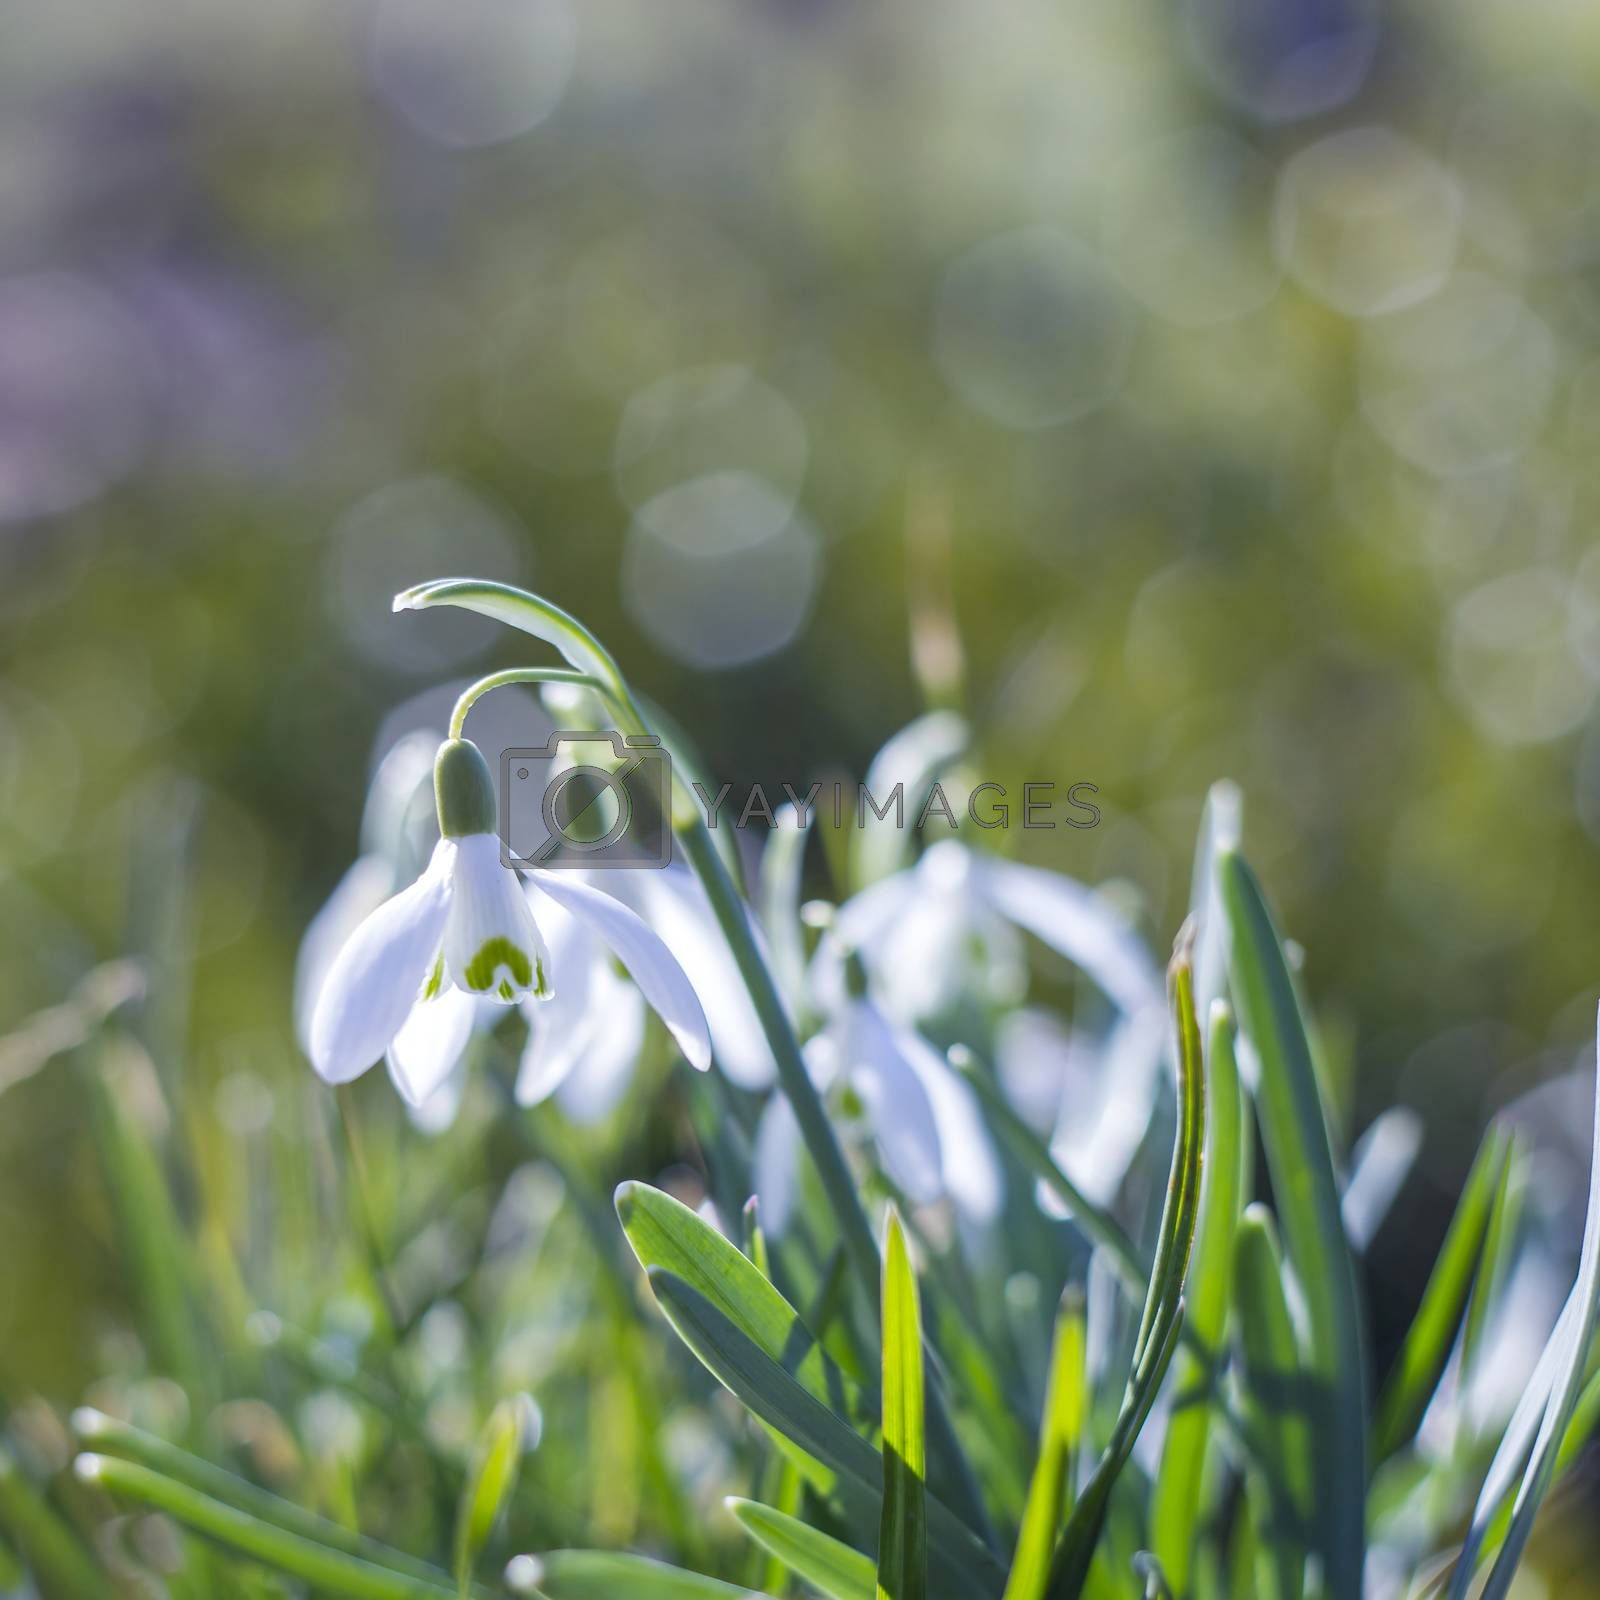 snowdrop - one of the first spring flowers